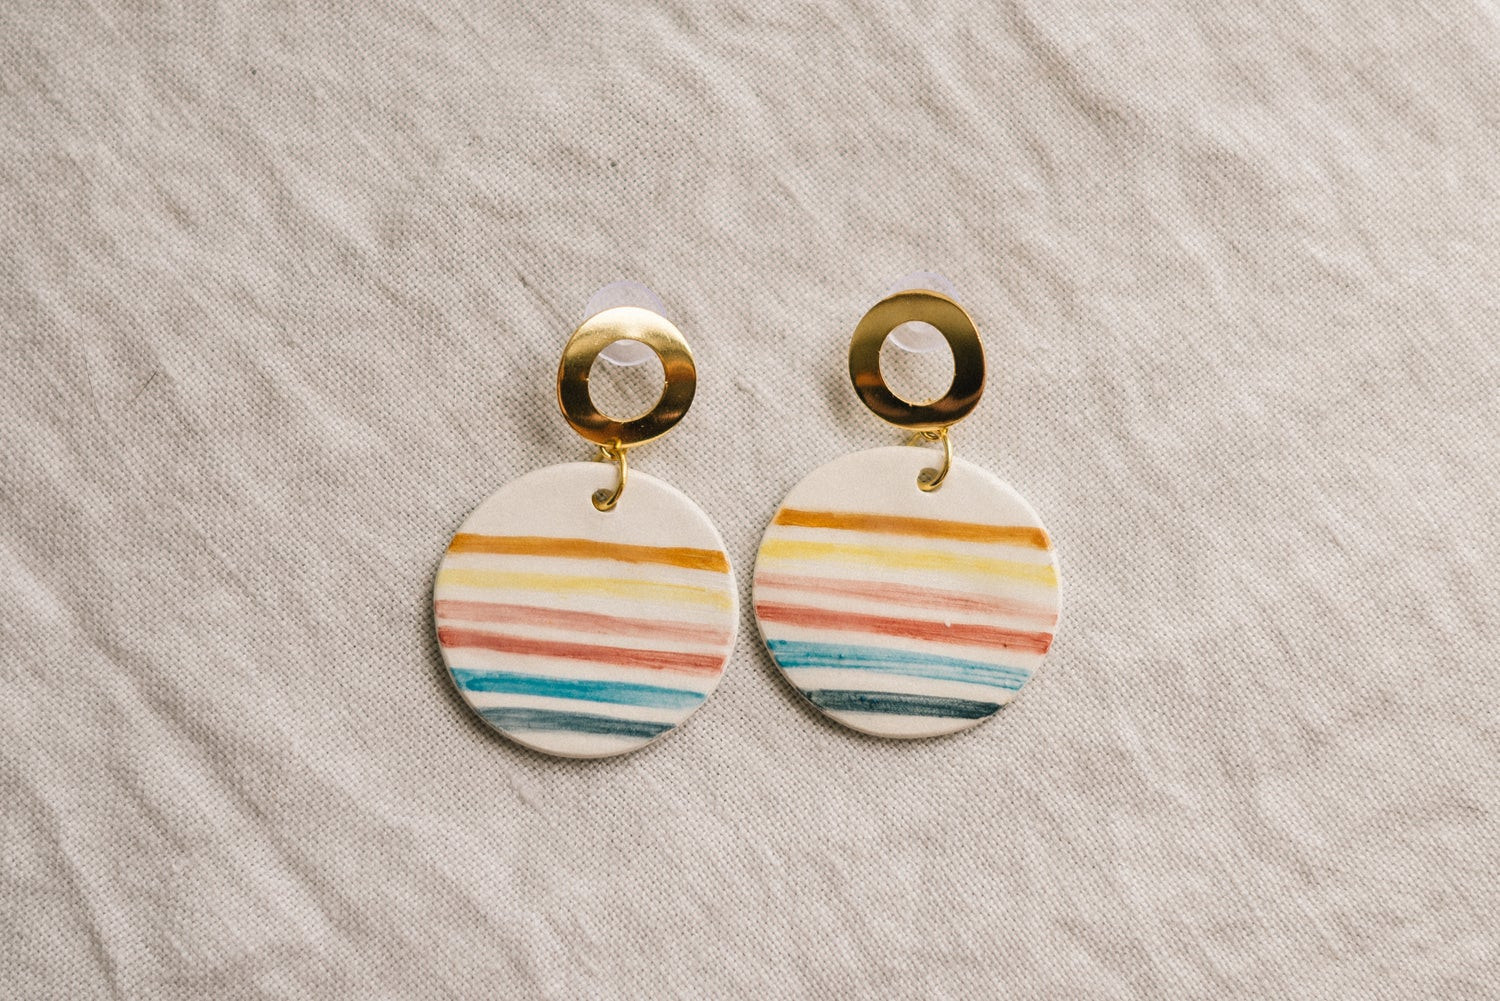 Image of CLAY EARRINGS: Modelo Circle